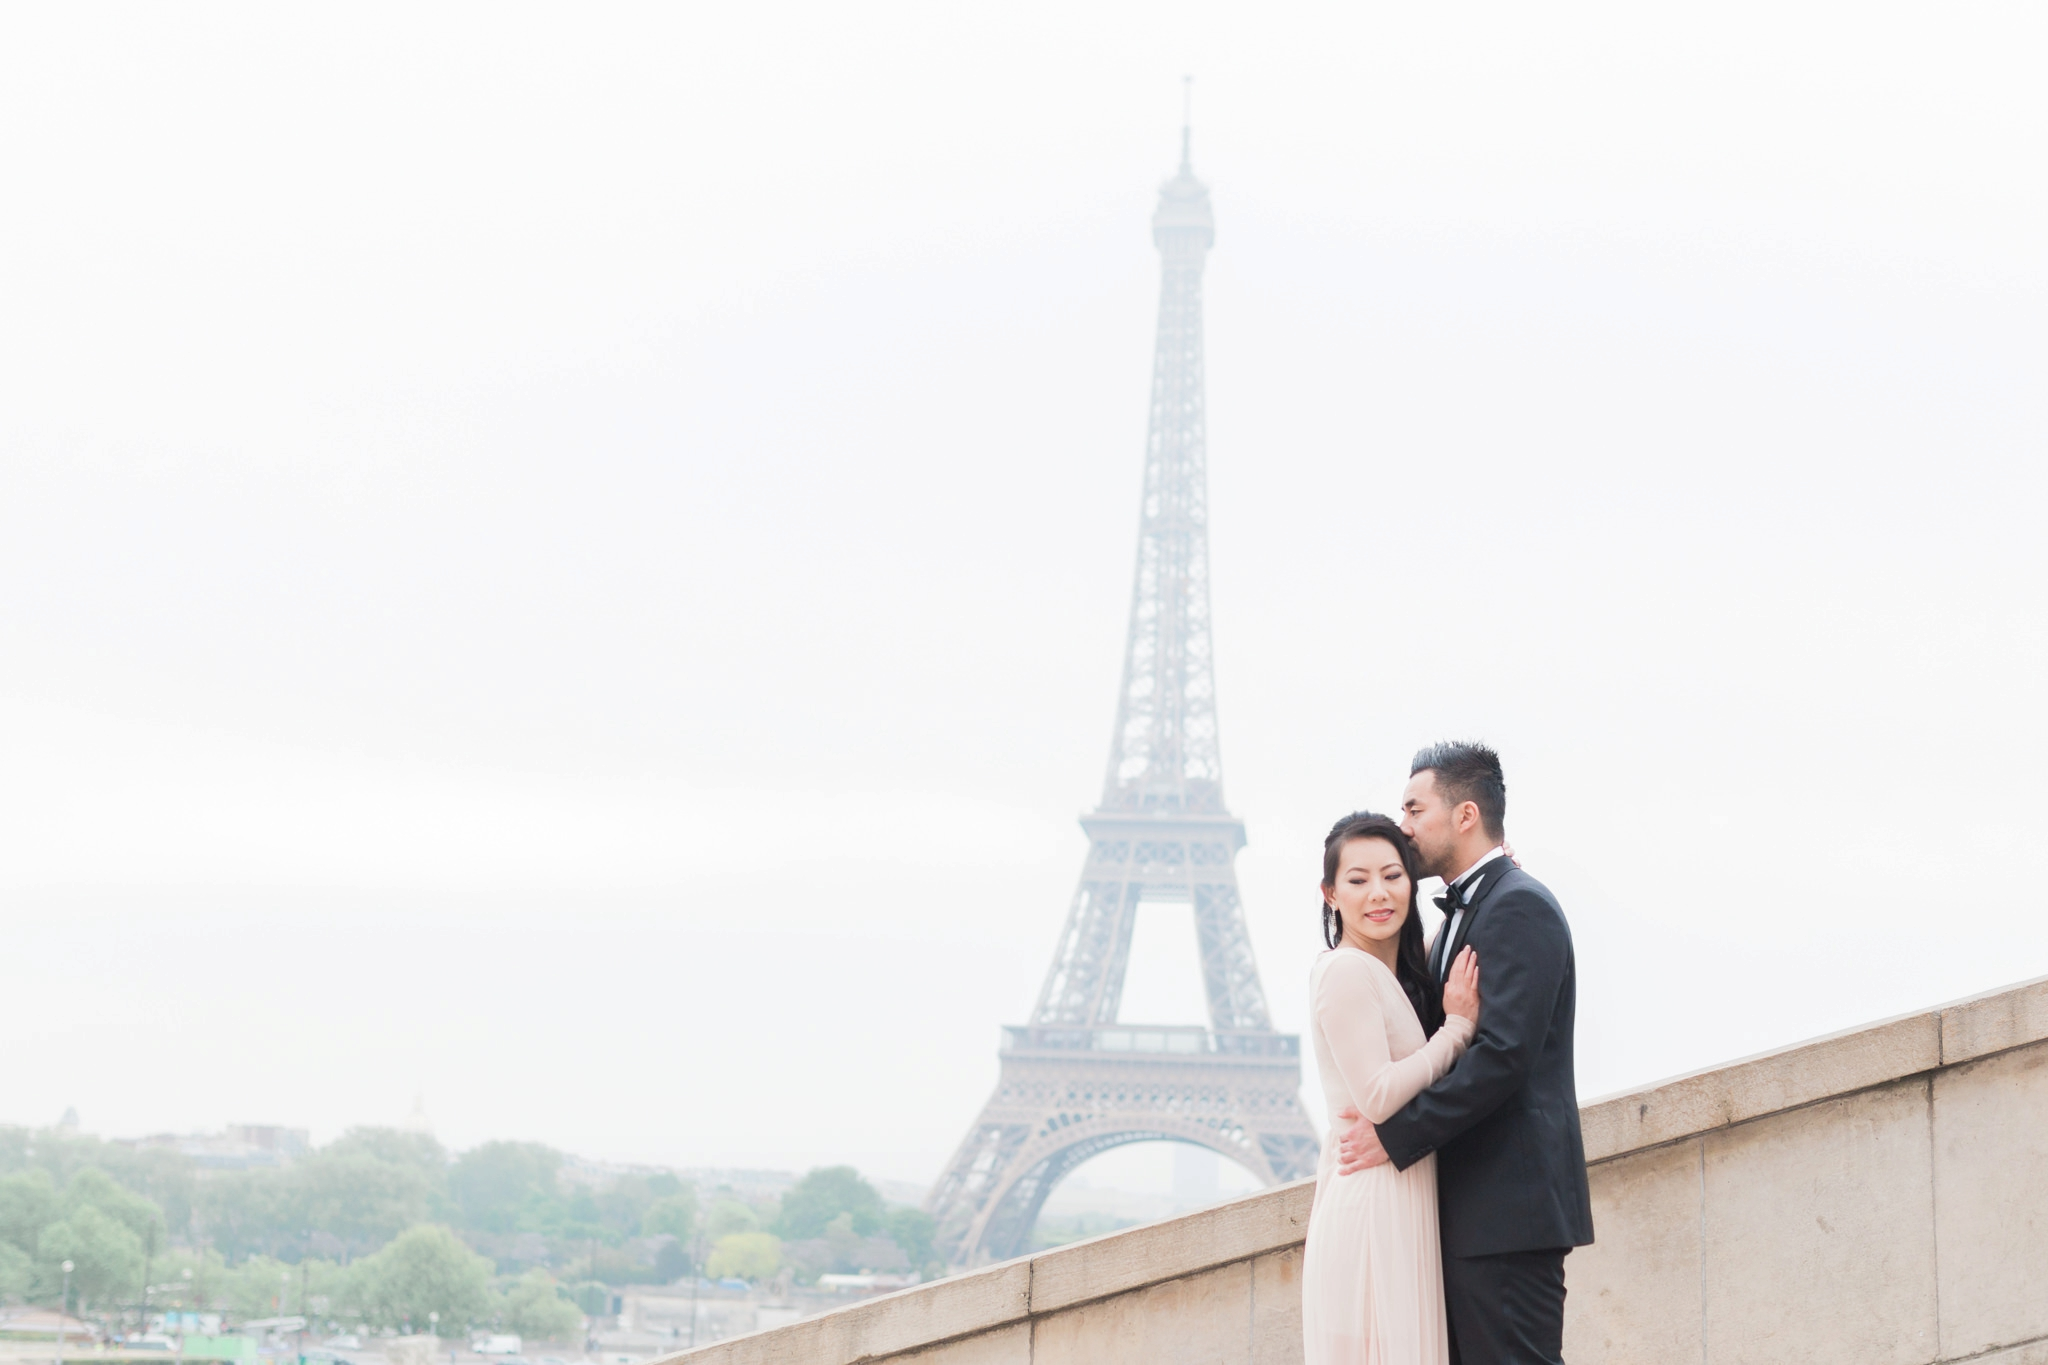 Suzanne_li_photography_paris_engagement_shoot_0029.jpg